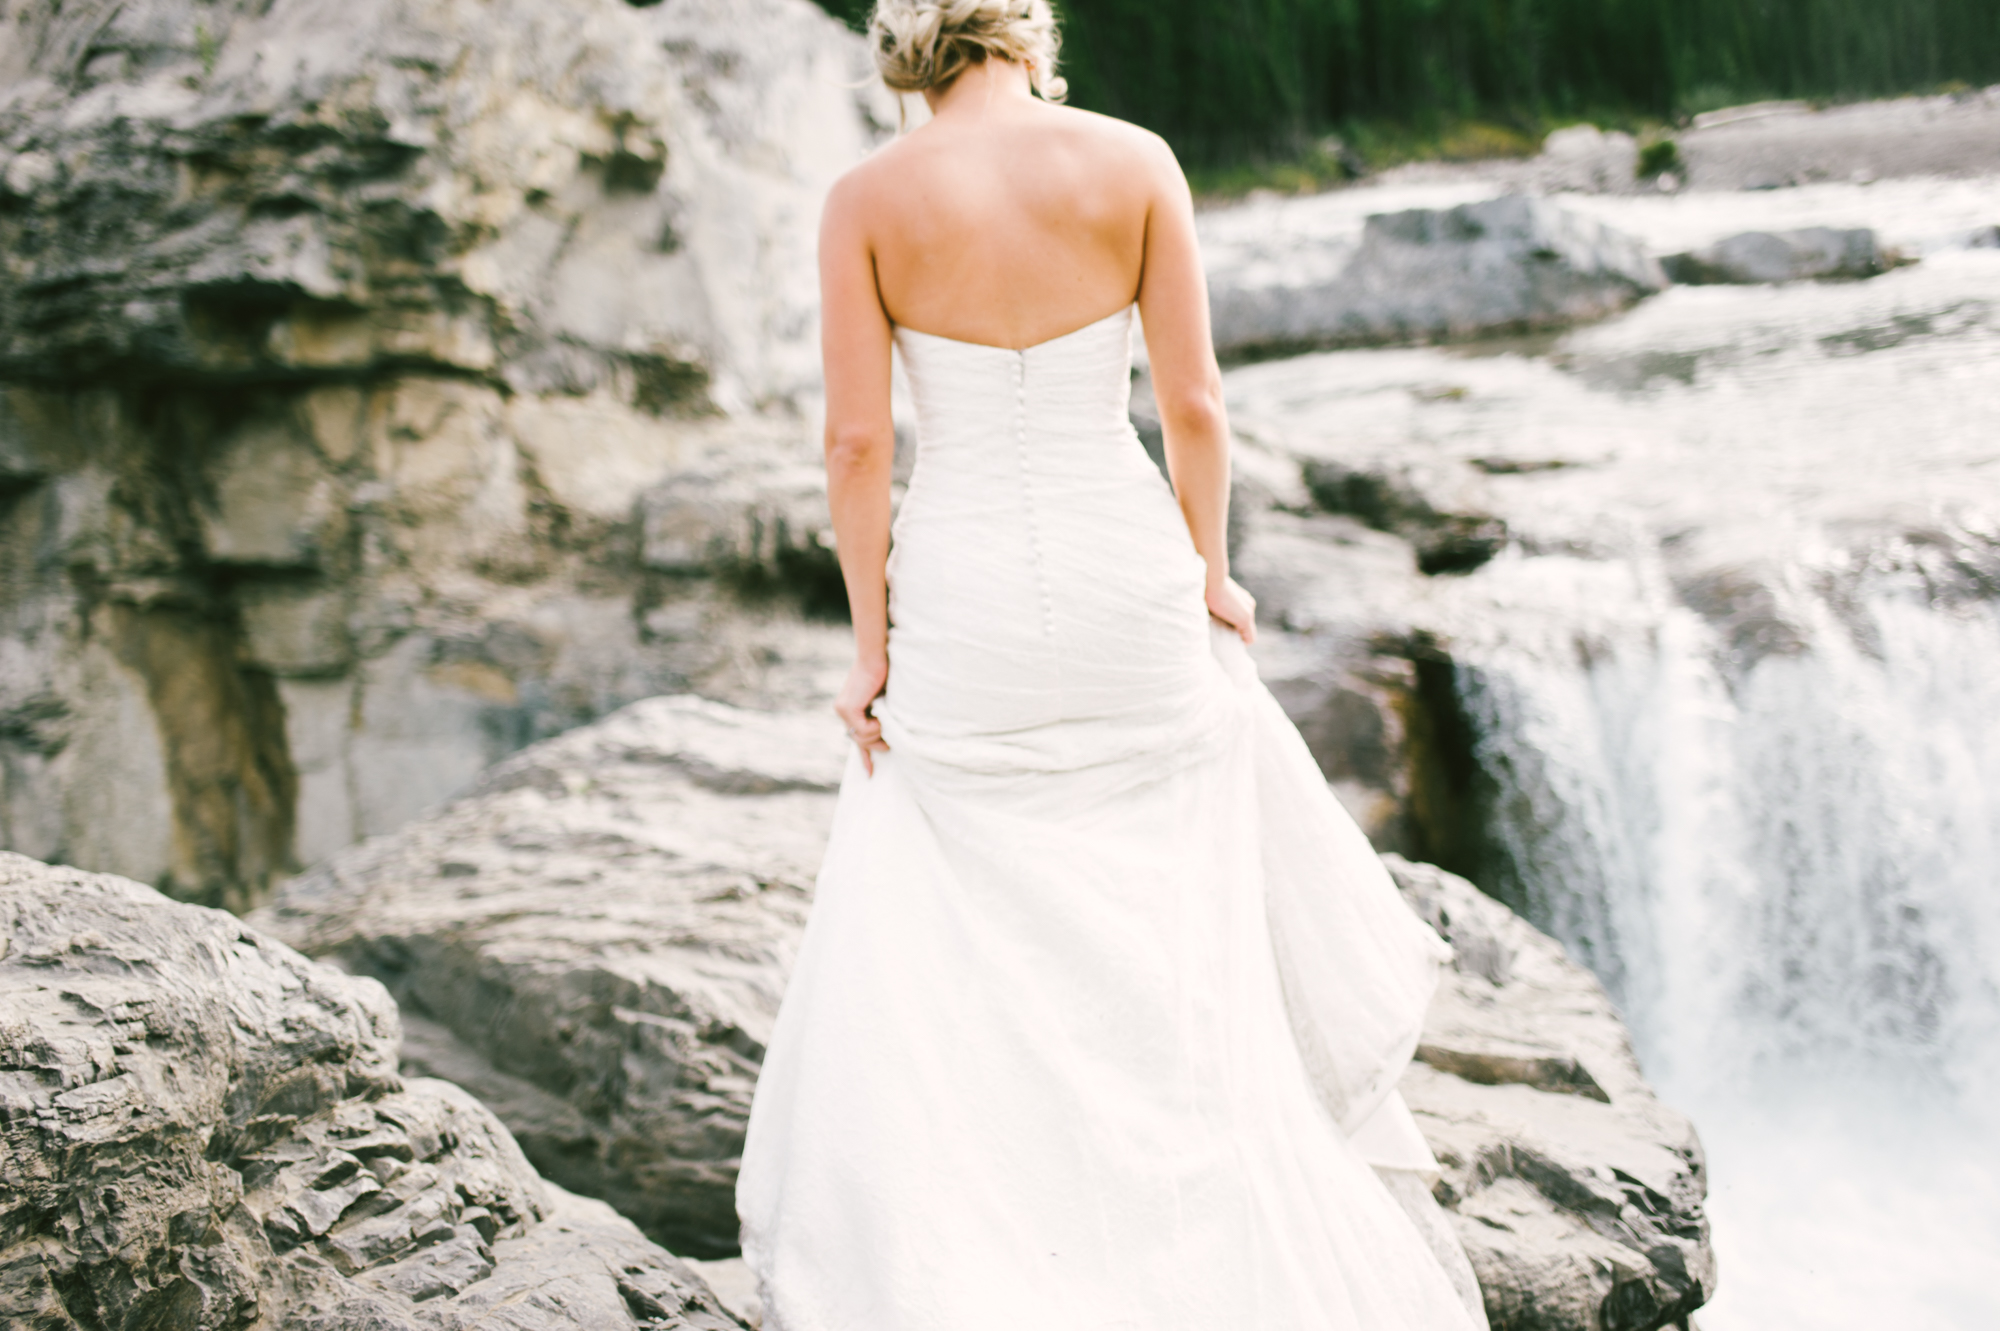 Rocky Mountain Banff Calgary Alberta Wedding-Jessika Hunter Photo-66.JPG